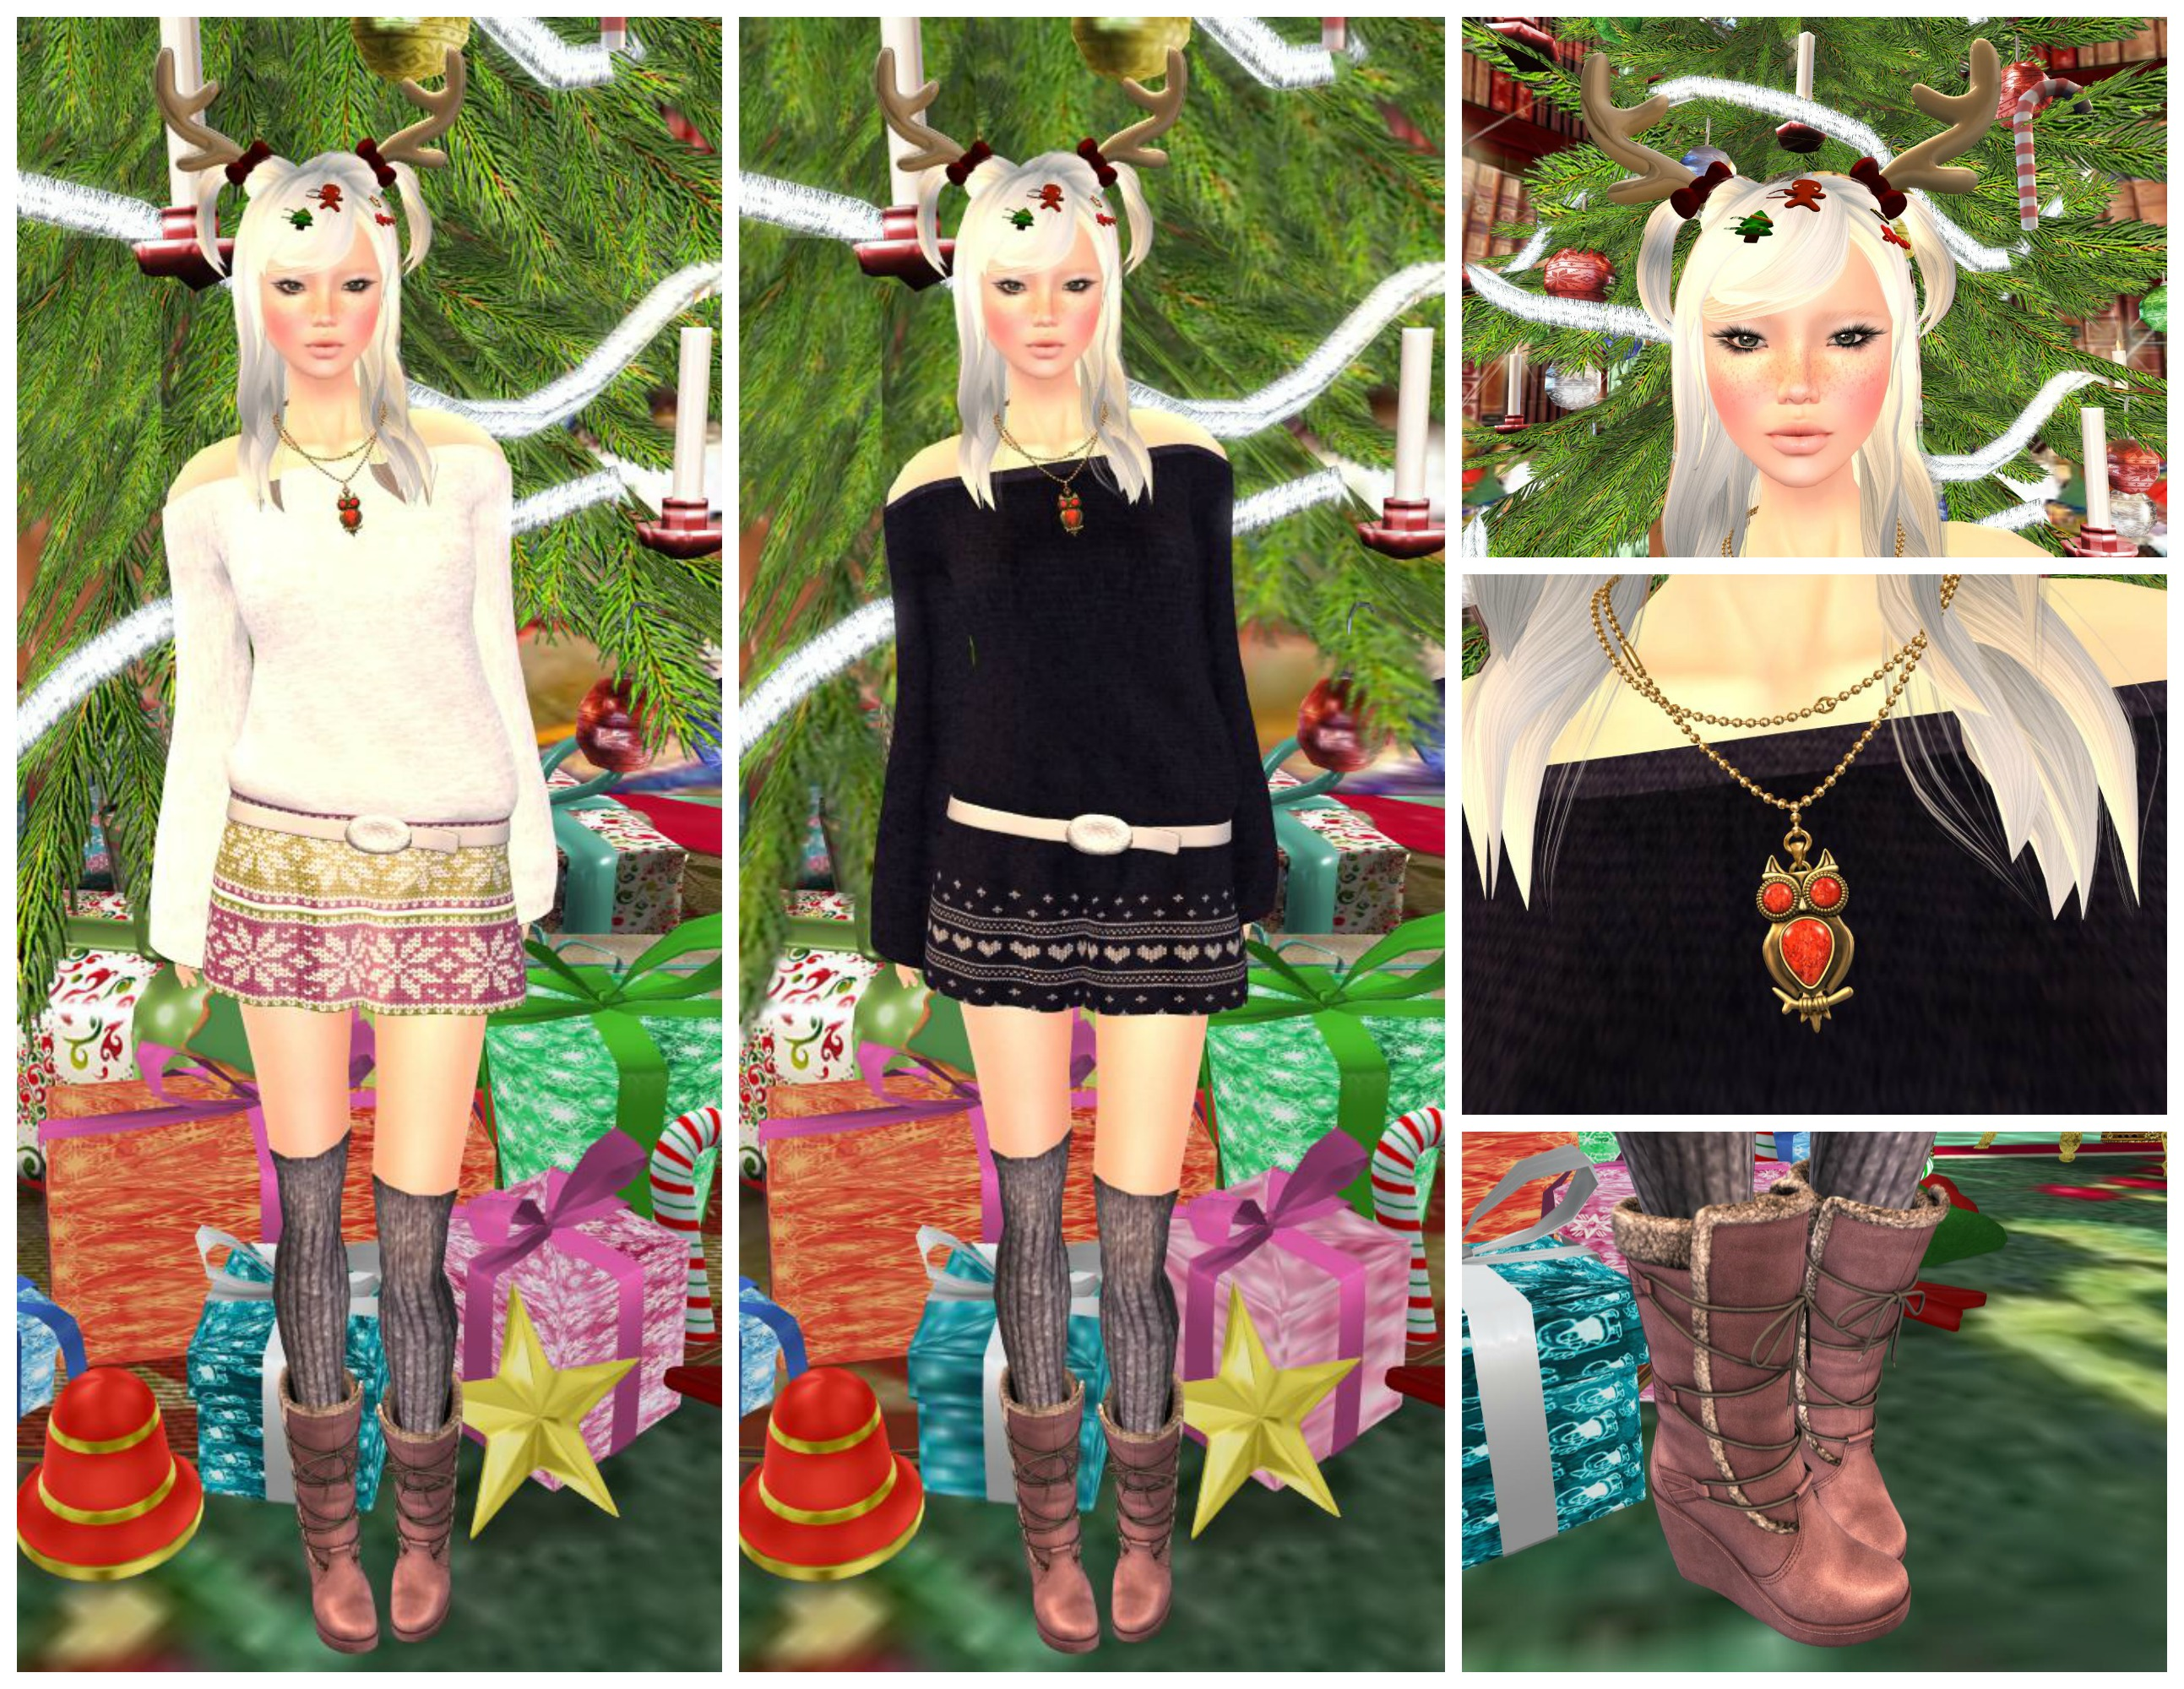 Eyelure Off shoulder knit dress  feat Tableau Vivant & MG